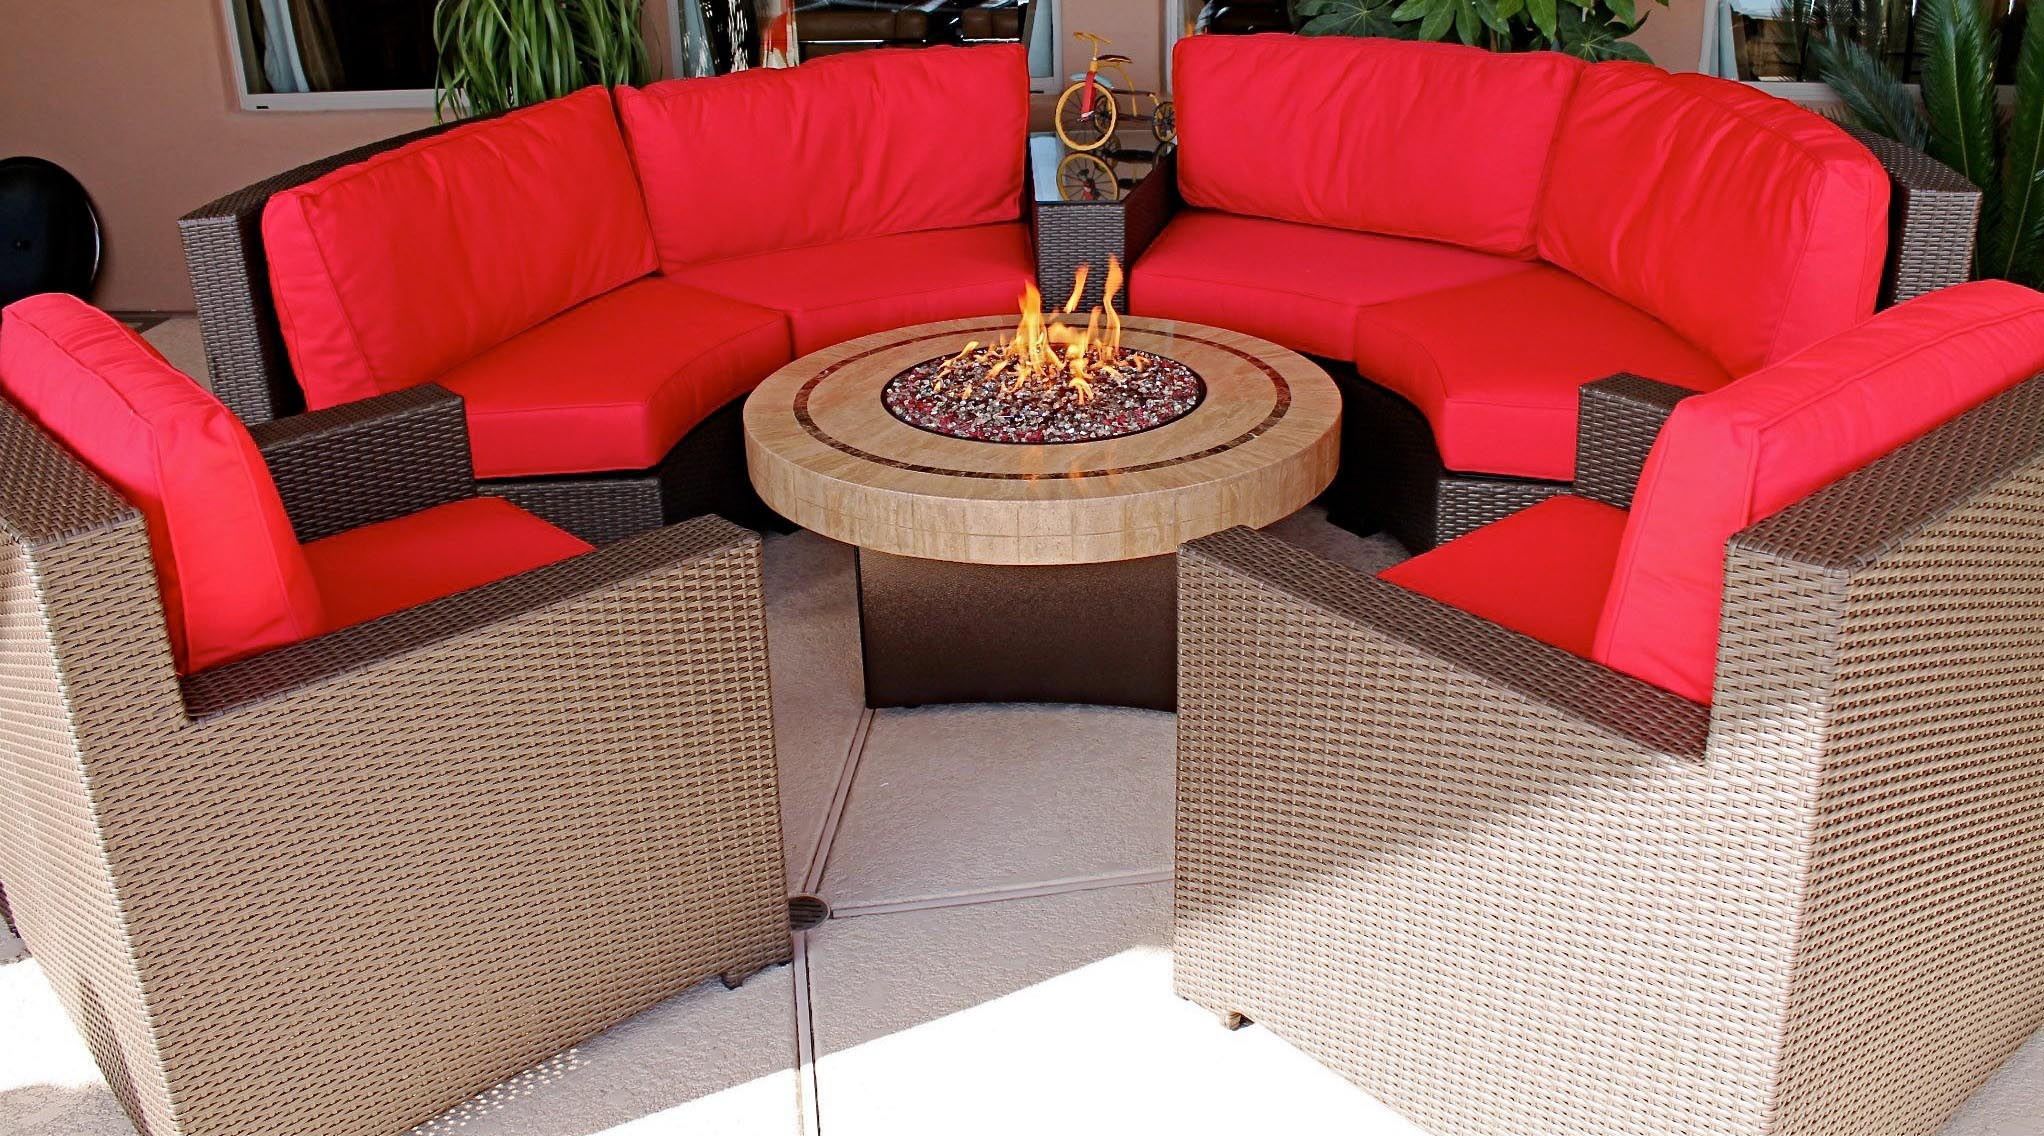 Tabletop Gas Fire Pit